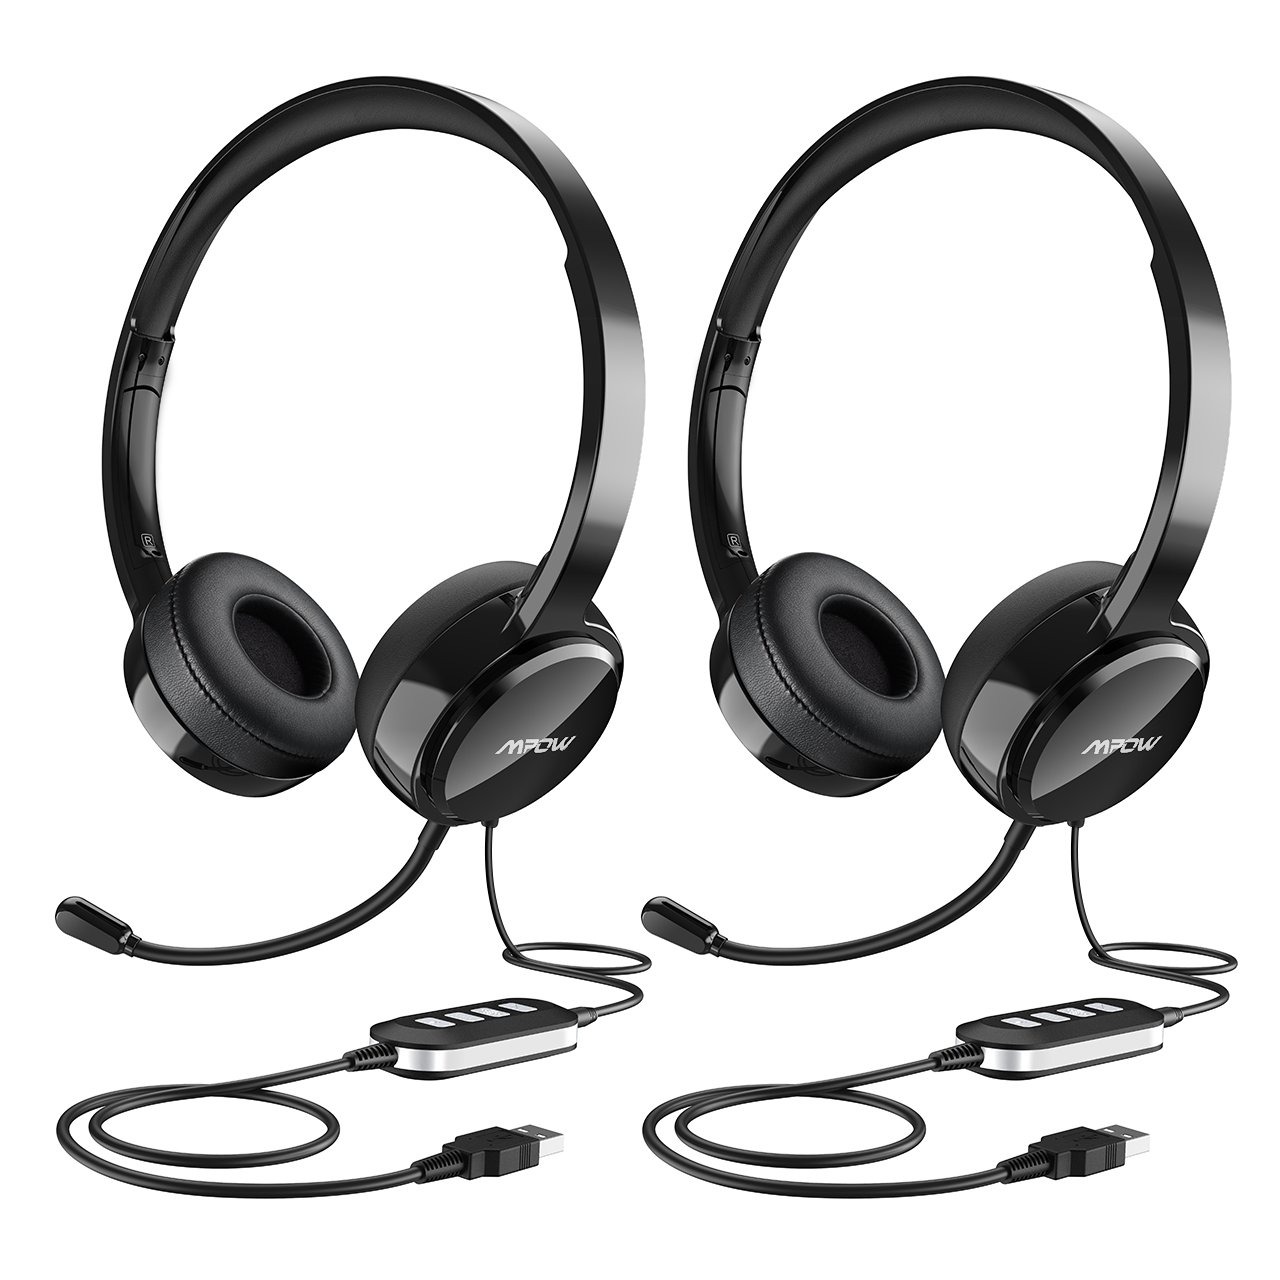 Mpow (2-Pack) USB Headset/ 3.5mm Computer Headset with Microphone Noise Cancelling, Lightweight PC Headset Wired Headphones, Business Headset for Skype, Webinar, Phone, Call Center